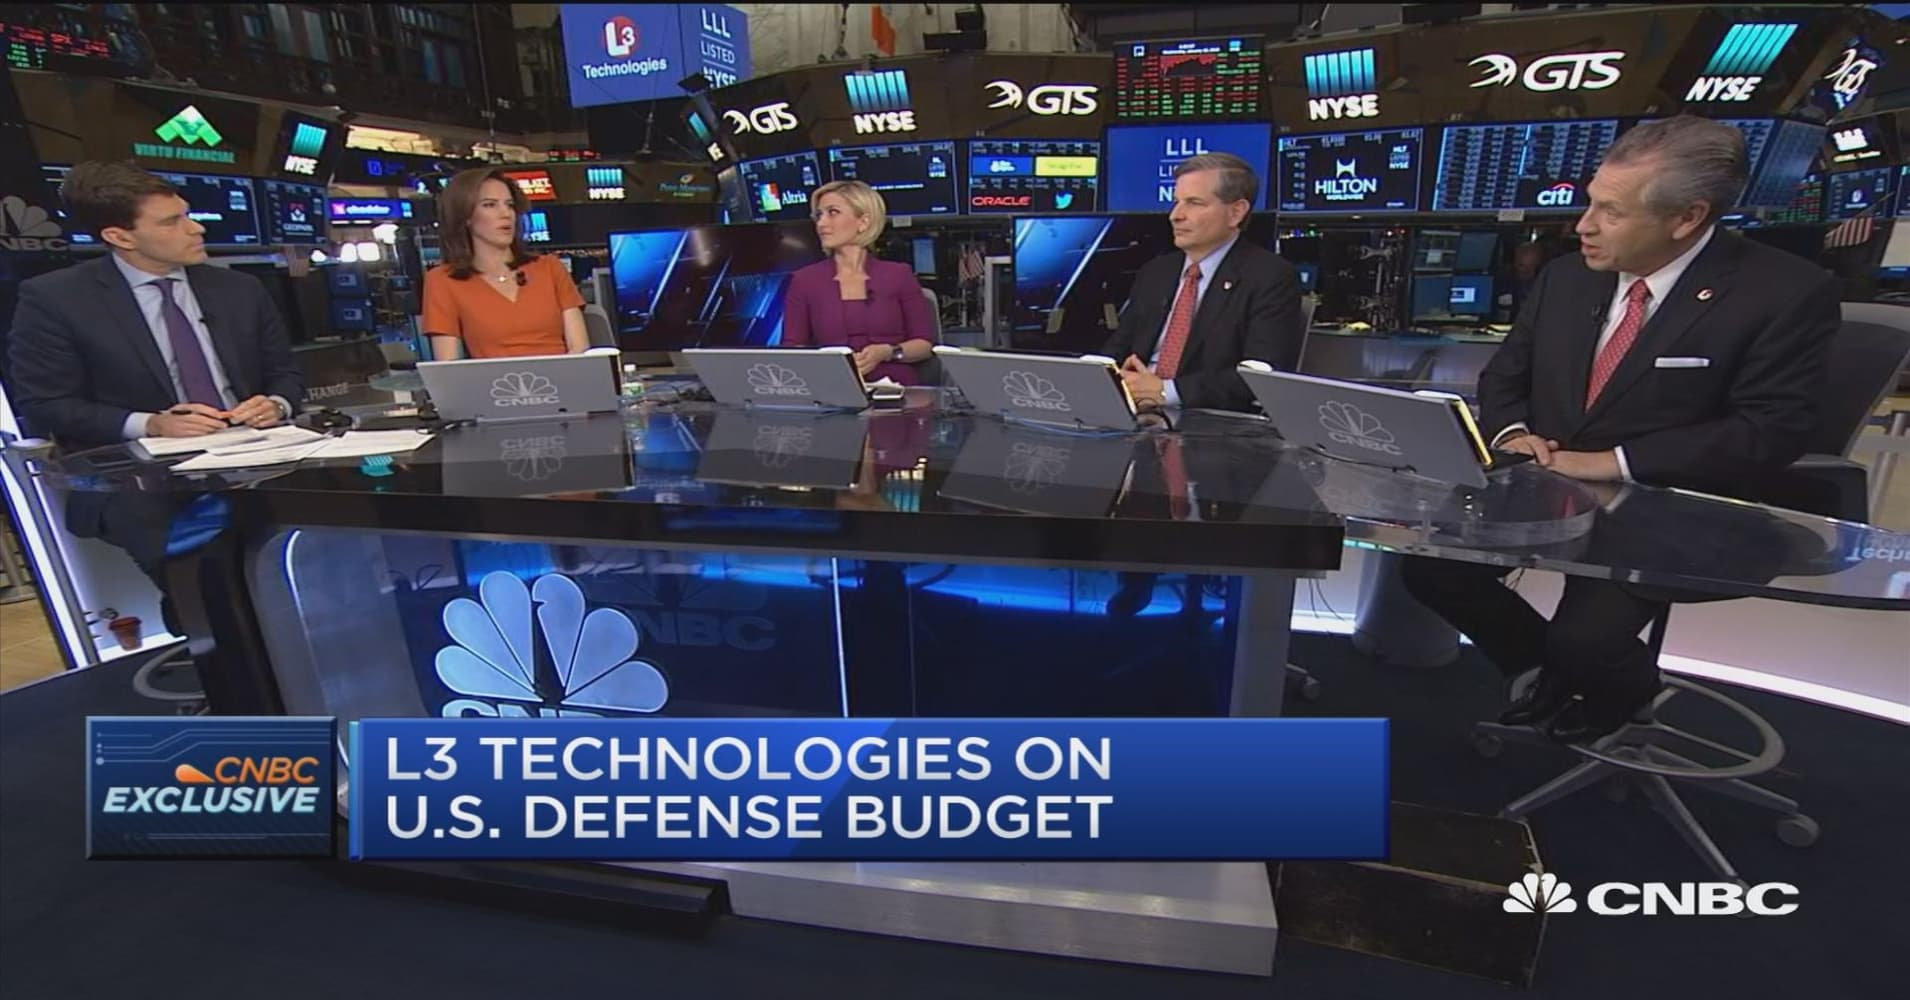 L3 Technologies: We plan to aggressively grow company